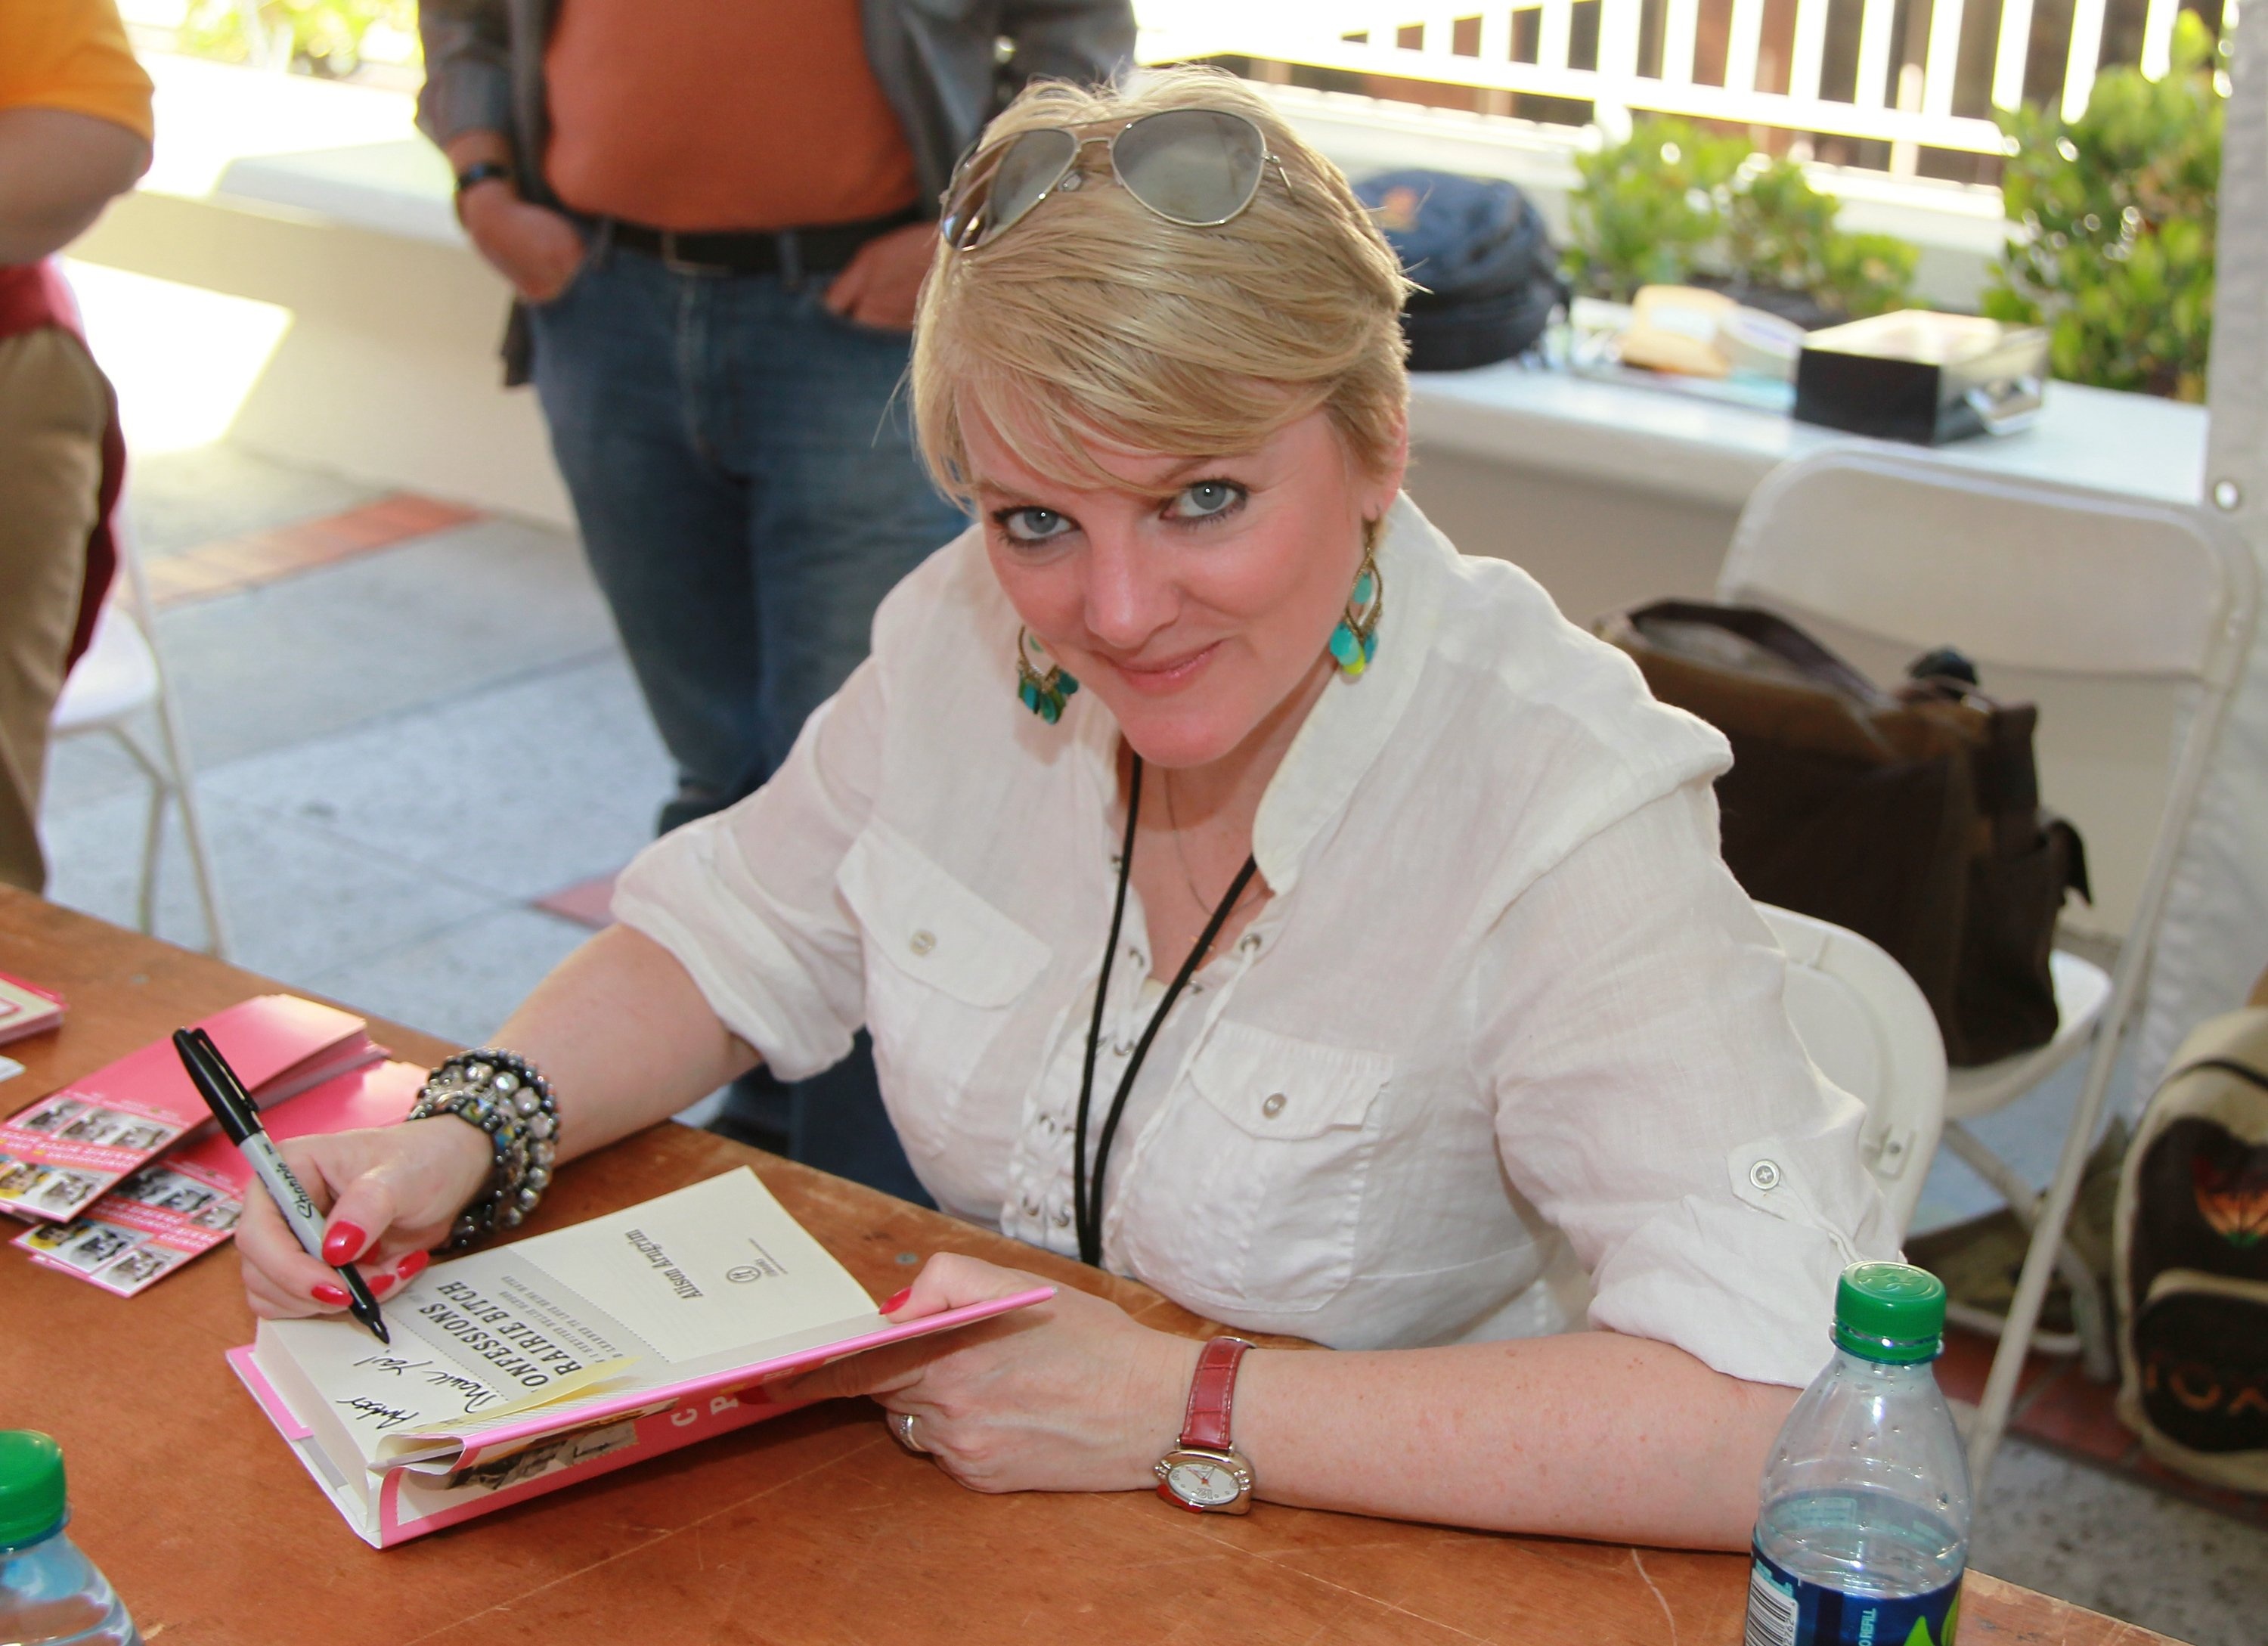 Alison Arngrim at the 16th Annual Los Angeles Times Festival of Books in Los Angeles, California | Photo: Getty Images